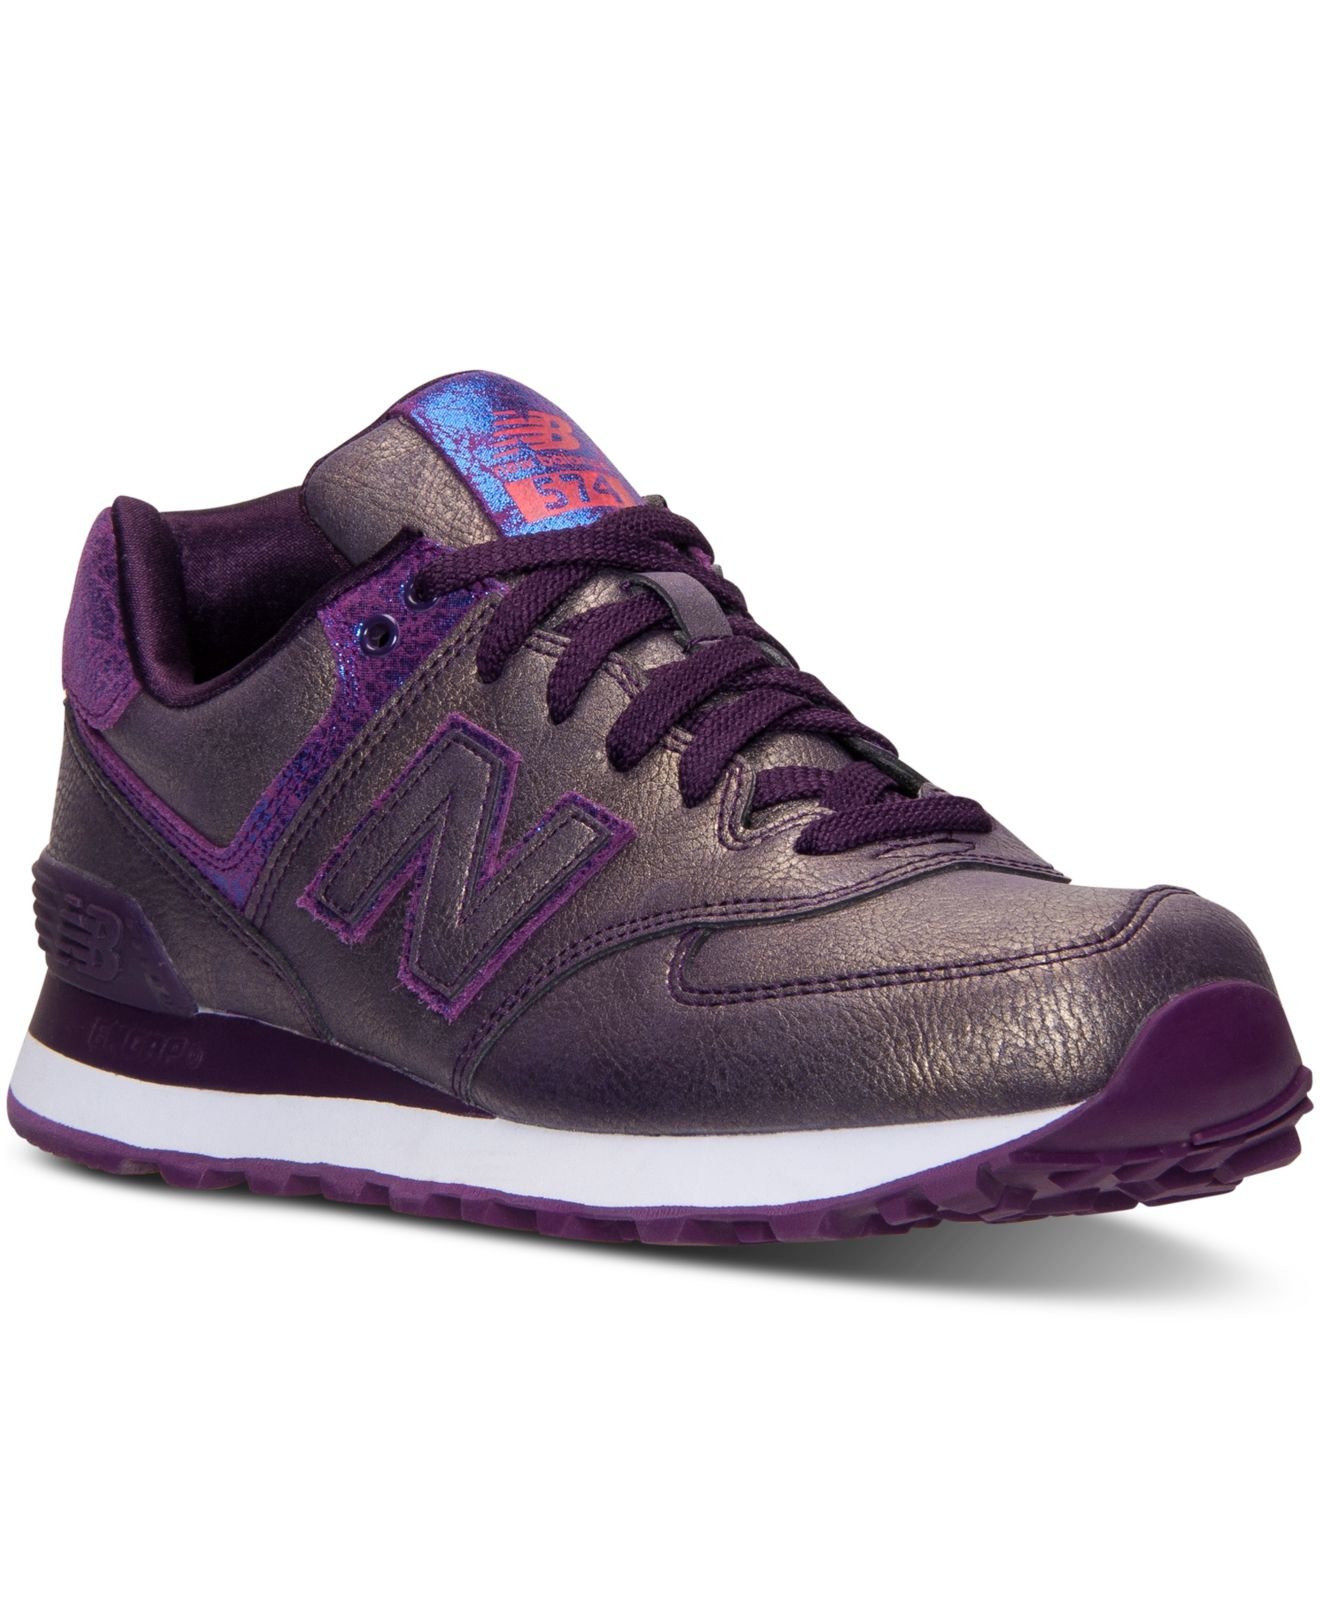 lyst new balance women 39 s 574 mineral glow casual sneakers from finish line in purple. Black Bedroom Furniture Sets. Home Design Ideas